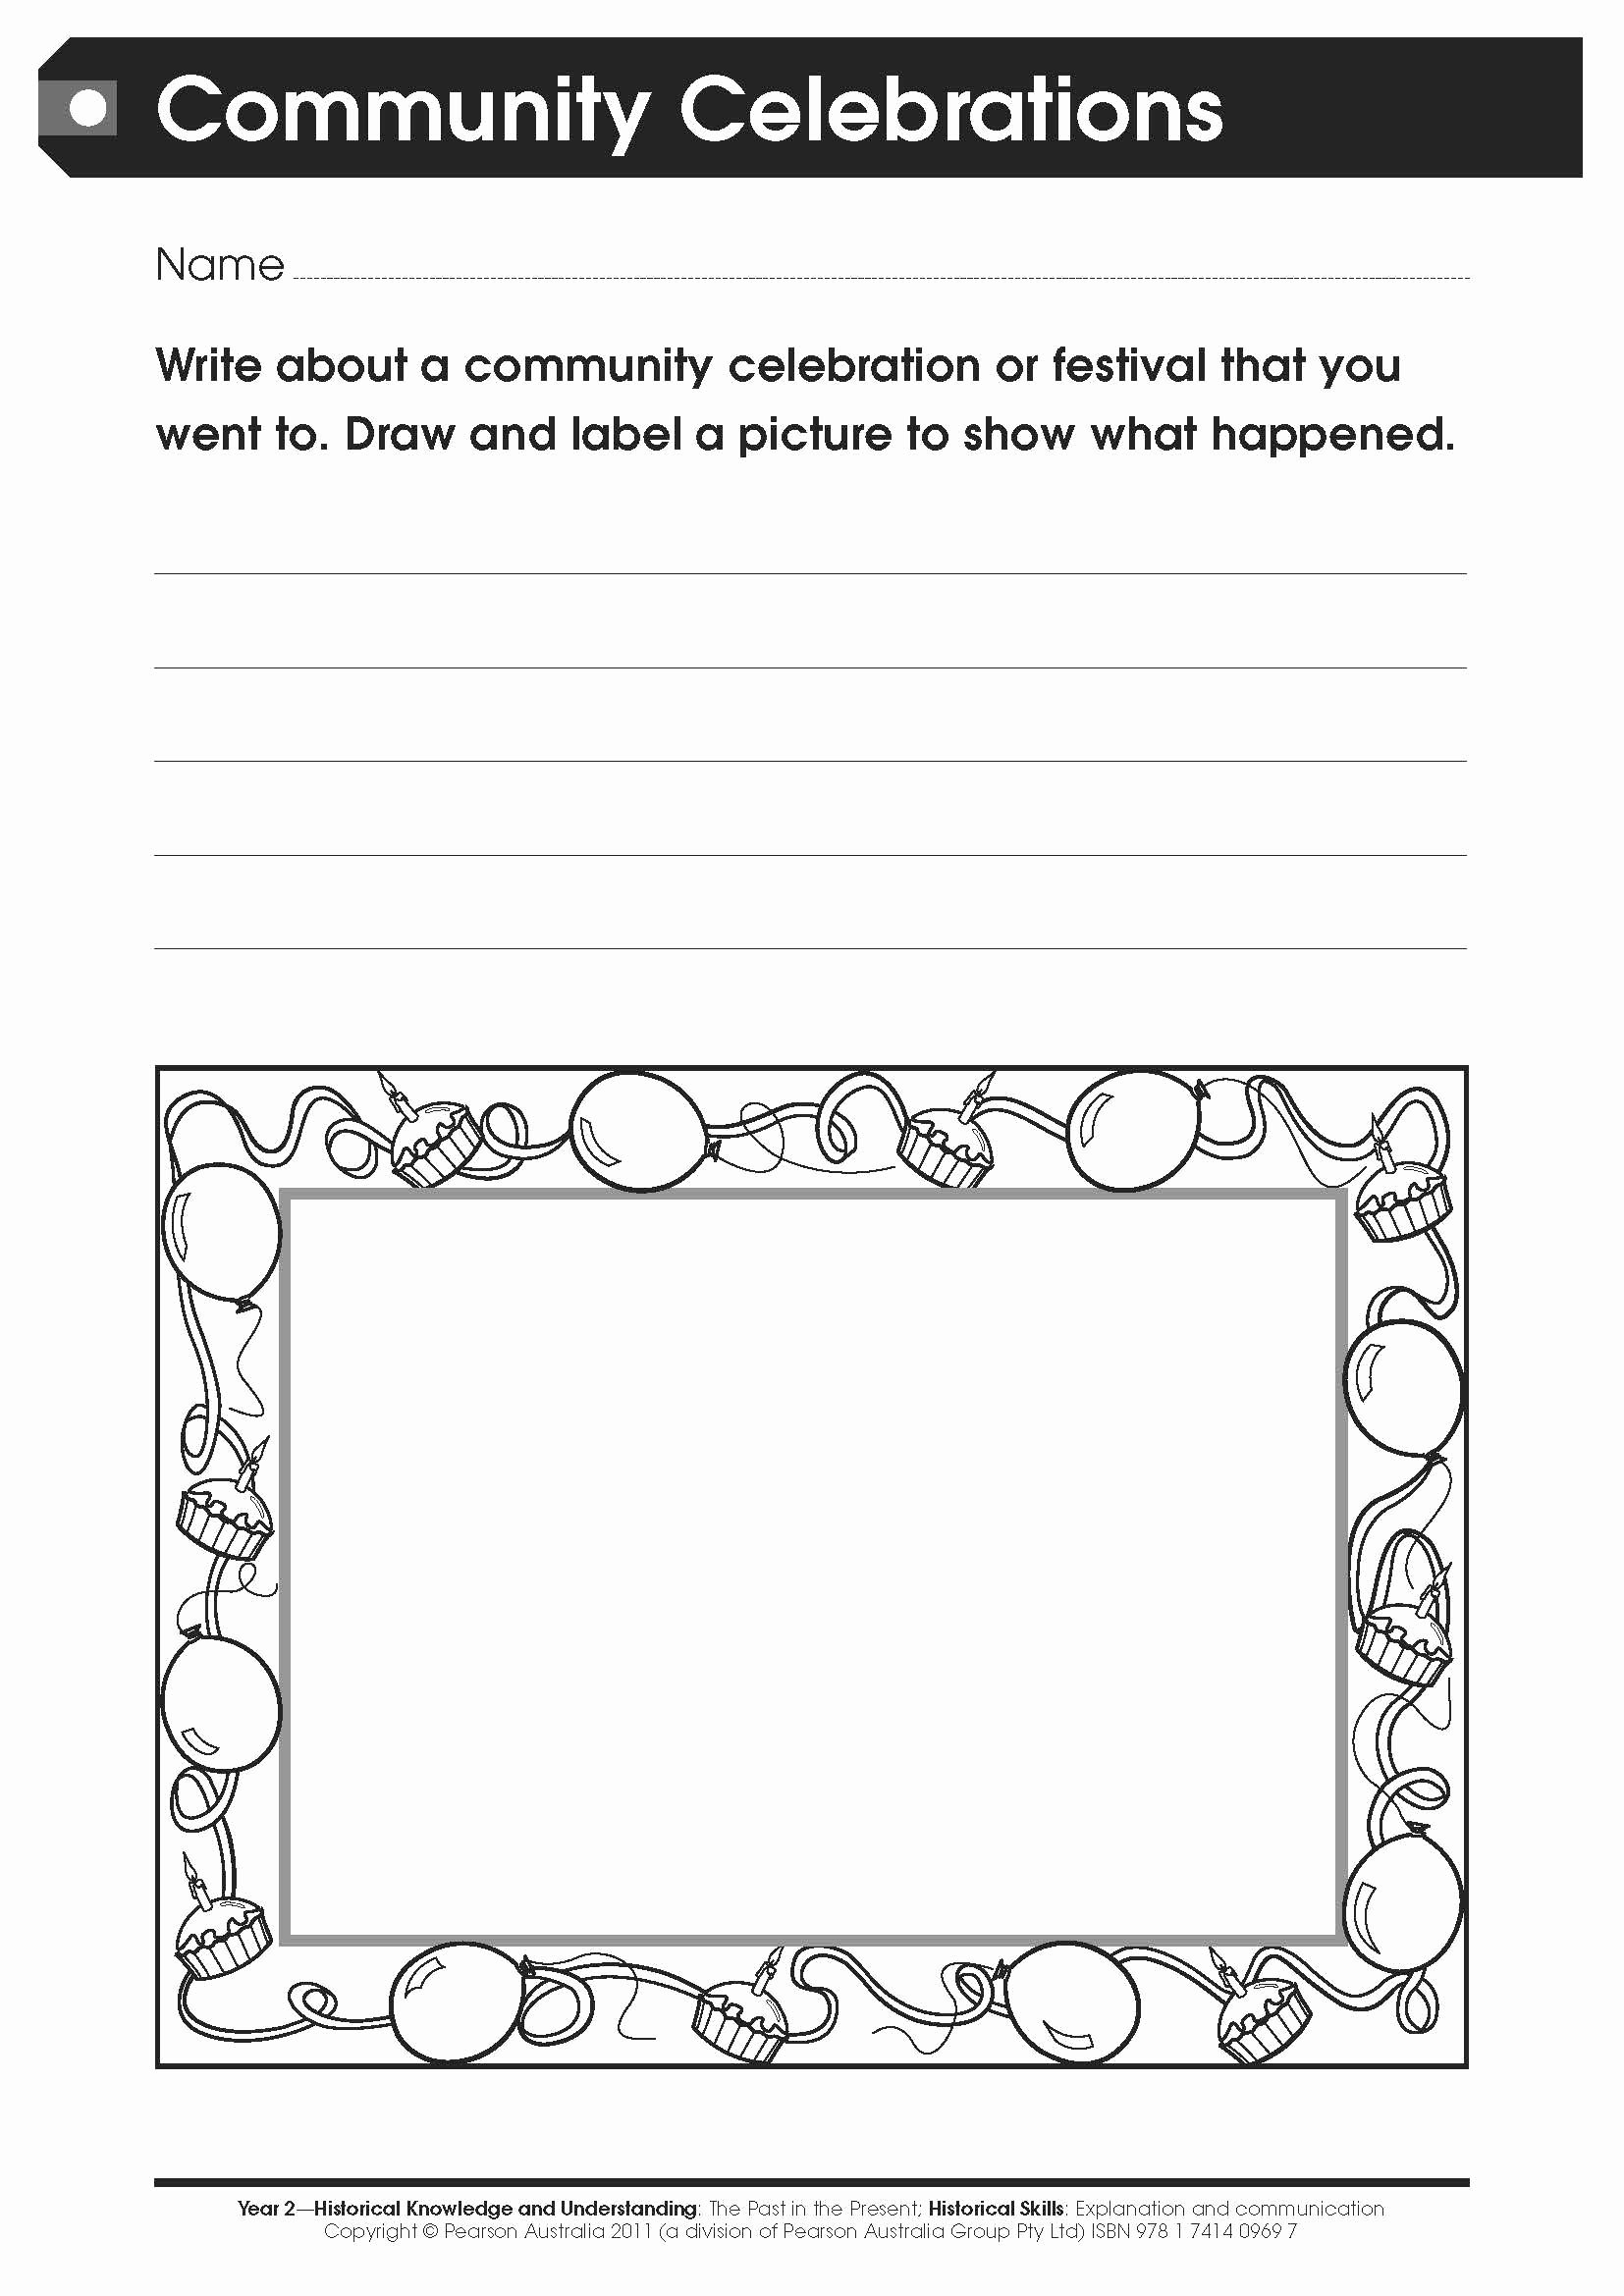 Worksheets for Preschoolers Australia top Free Worksheet Munity Celebrations for Lower Primary